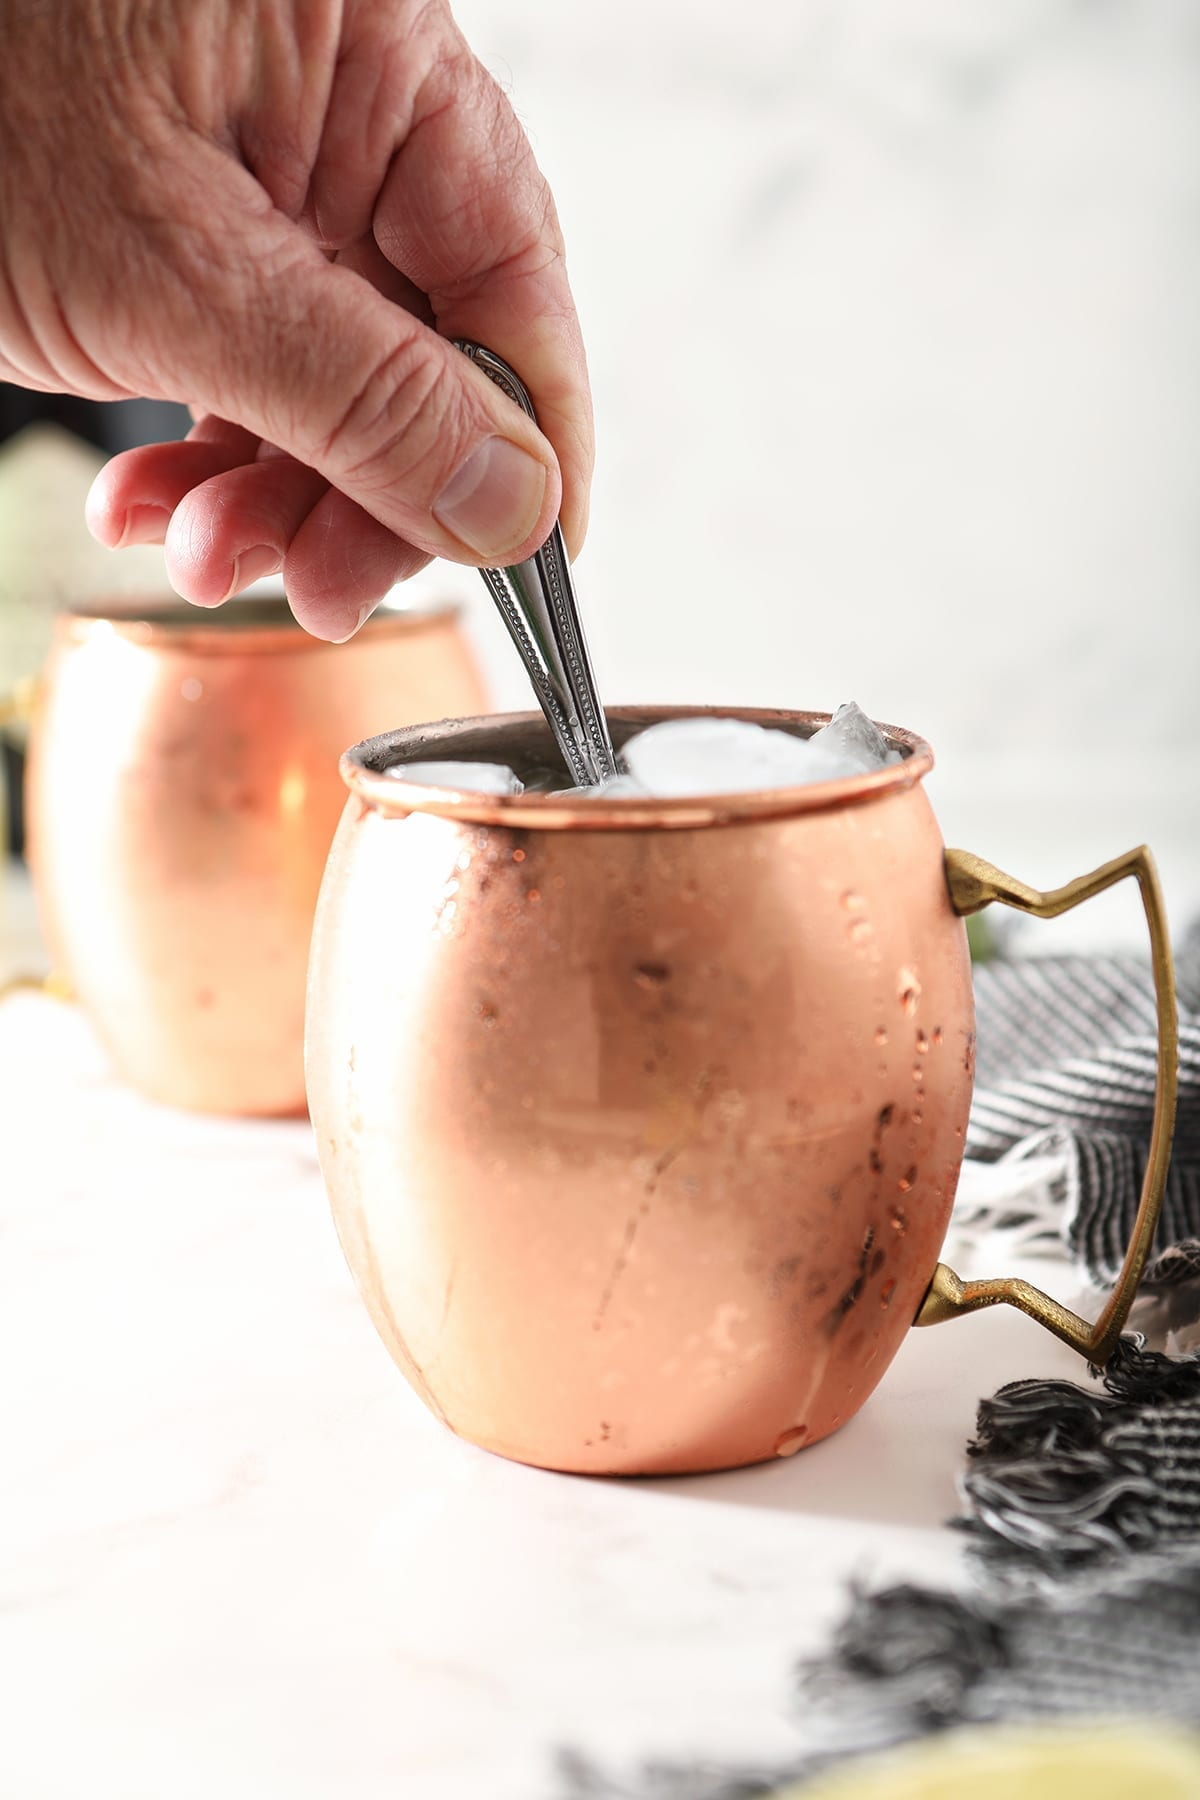 A person uses a silver spoon to stir ingredients inside a copper mug